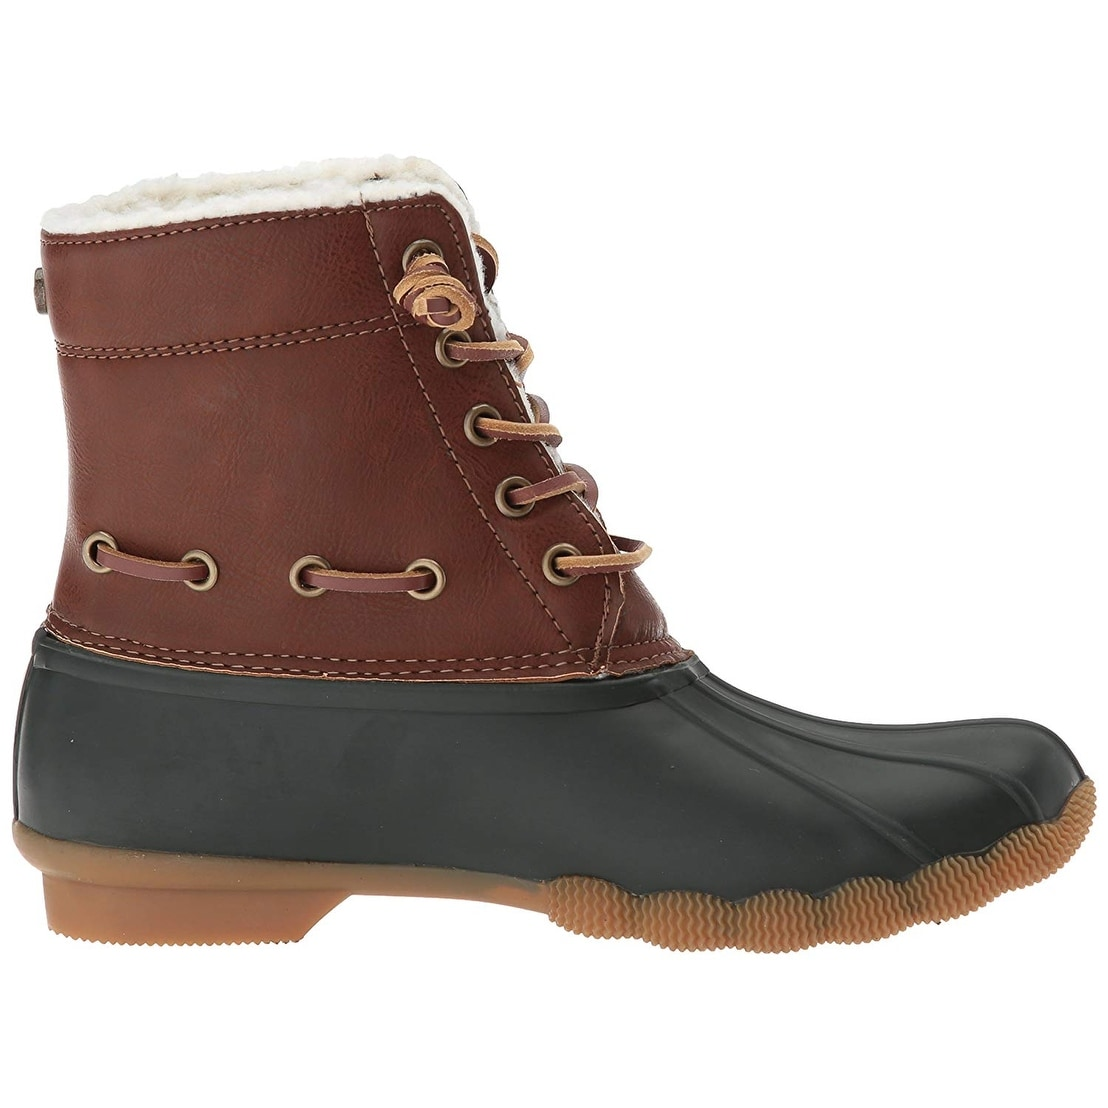 f159228a55c Shop Steve Madden Womens Torrent Closed Toe Ankle Rainboots - Free Shipping  Today - Overstock - 22901561